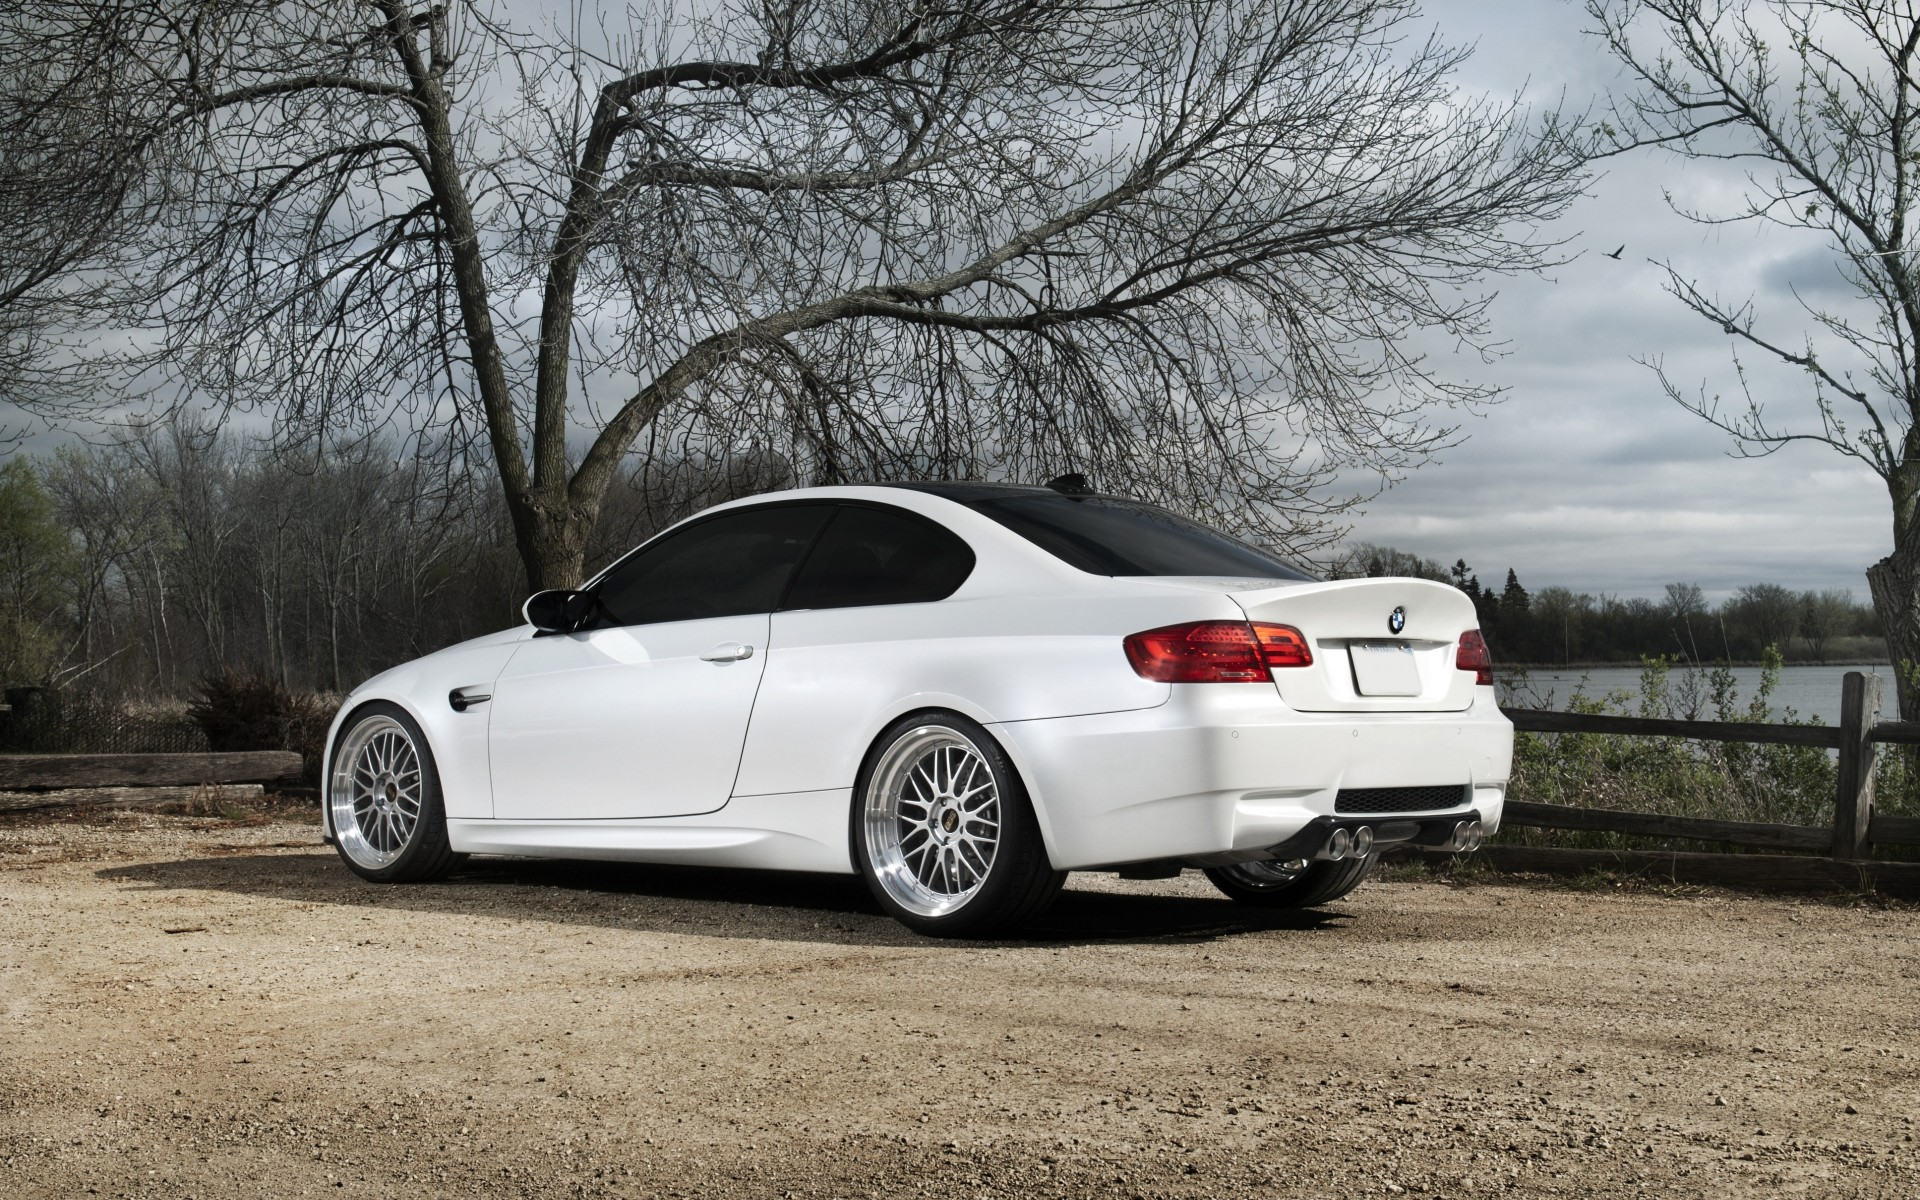 bmw m3 e92 tuning wallpaper 1920x1200 31745 wallpaperup. Black Bedroom Furniture Sets. Home Design Ideas